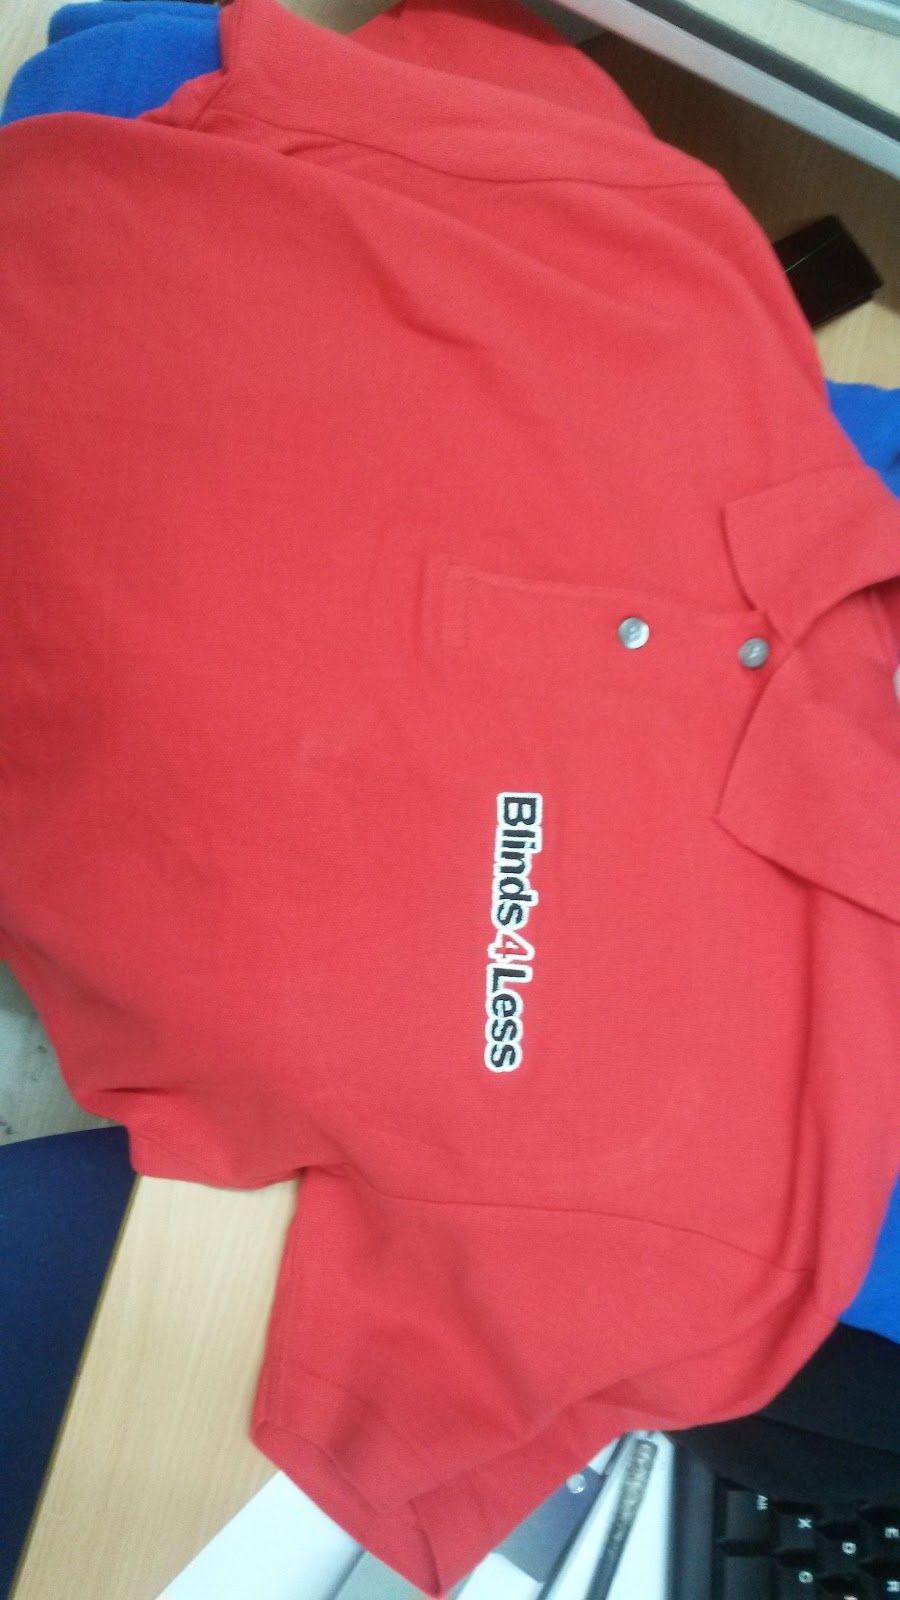 polo shirt embroidery by East London Printers